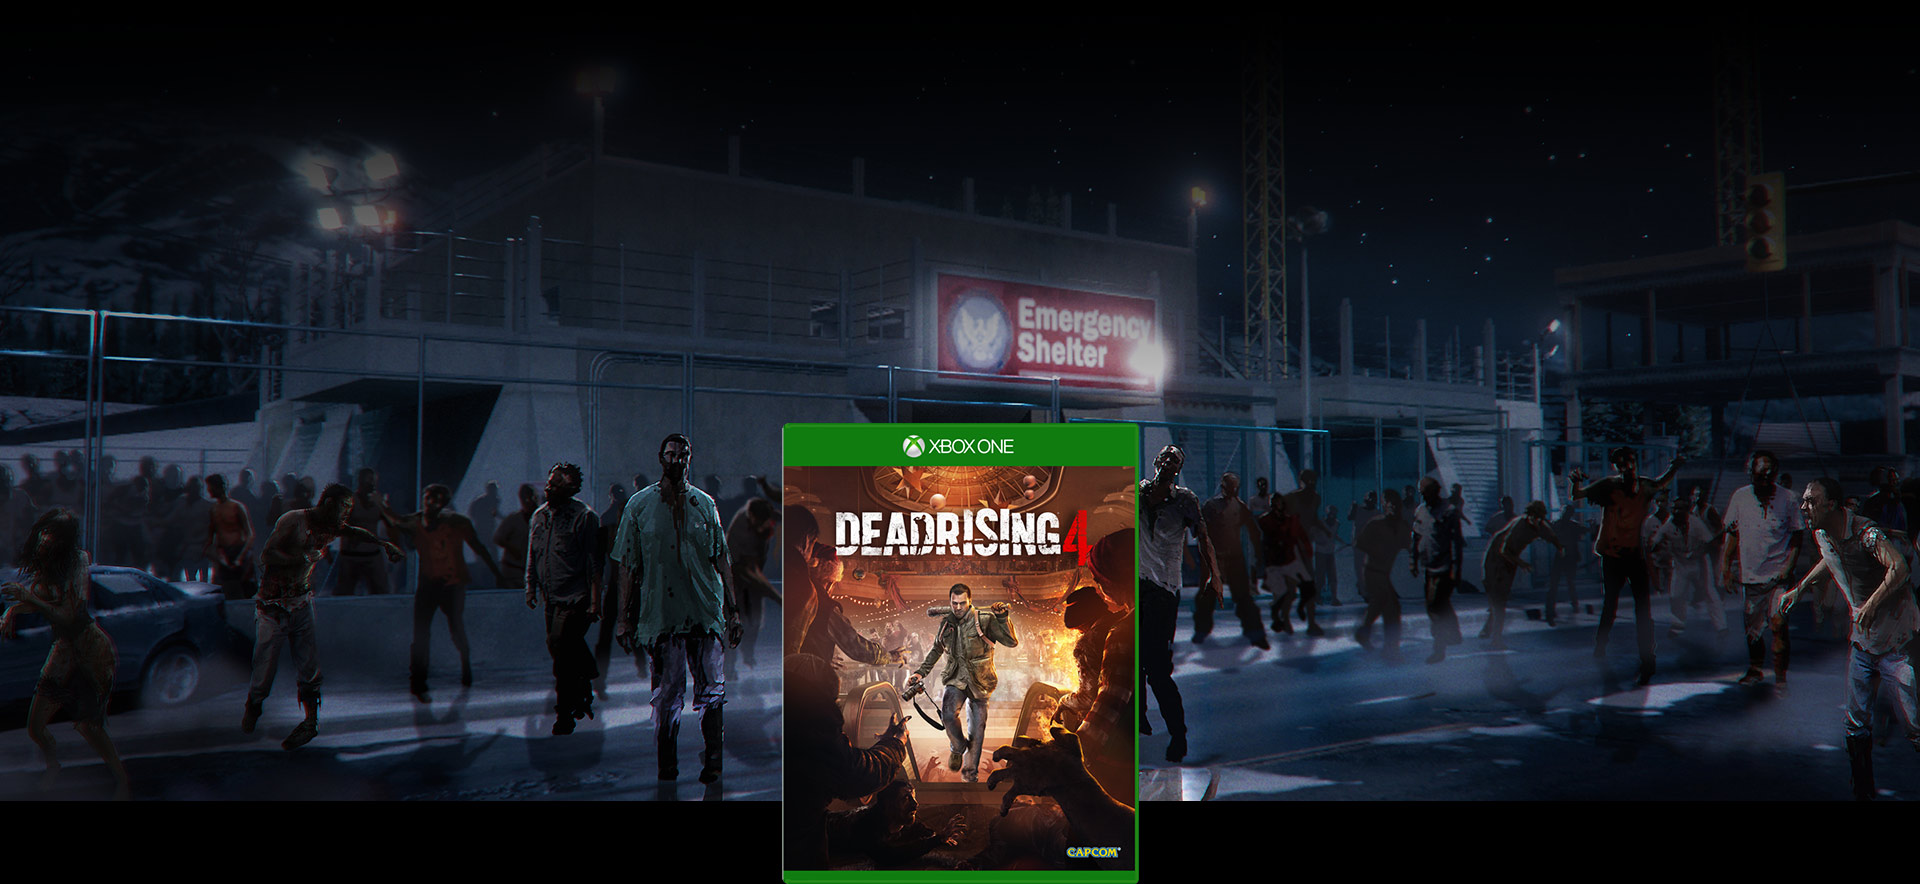 Dead Rising 4 box shot in front